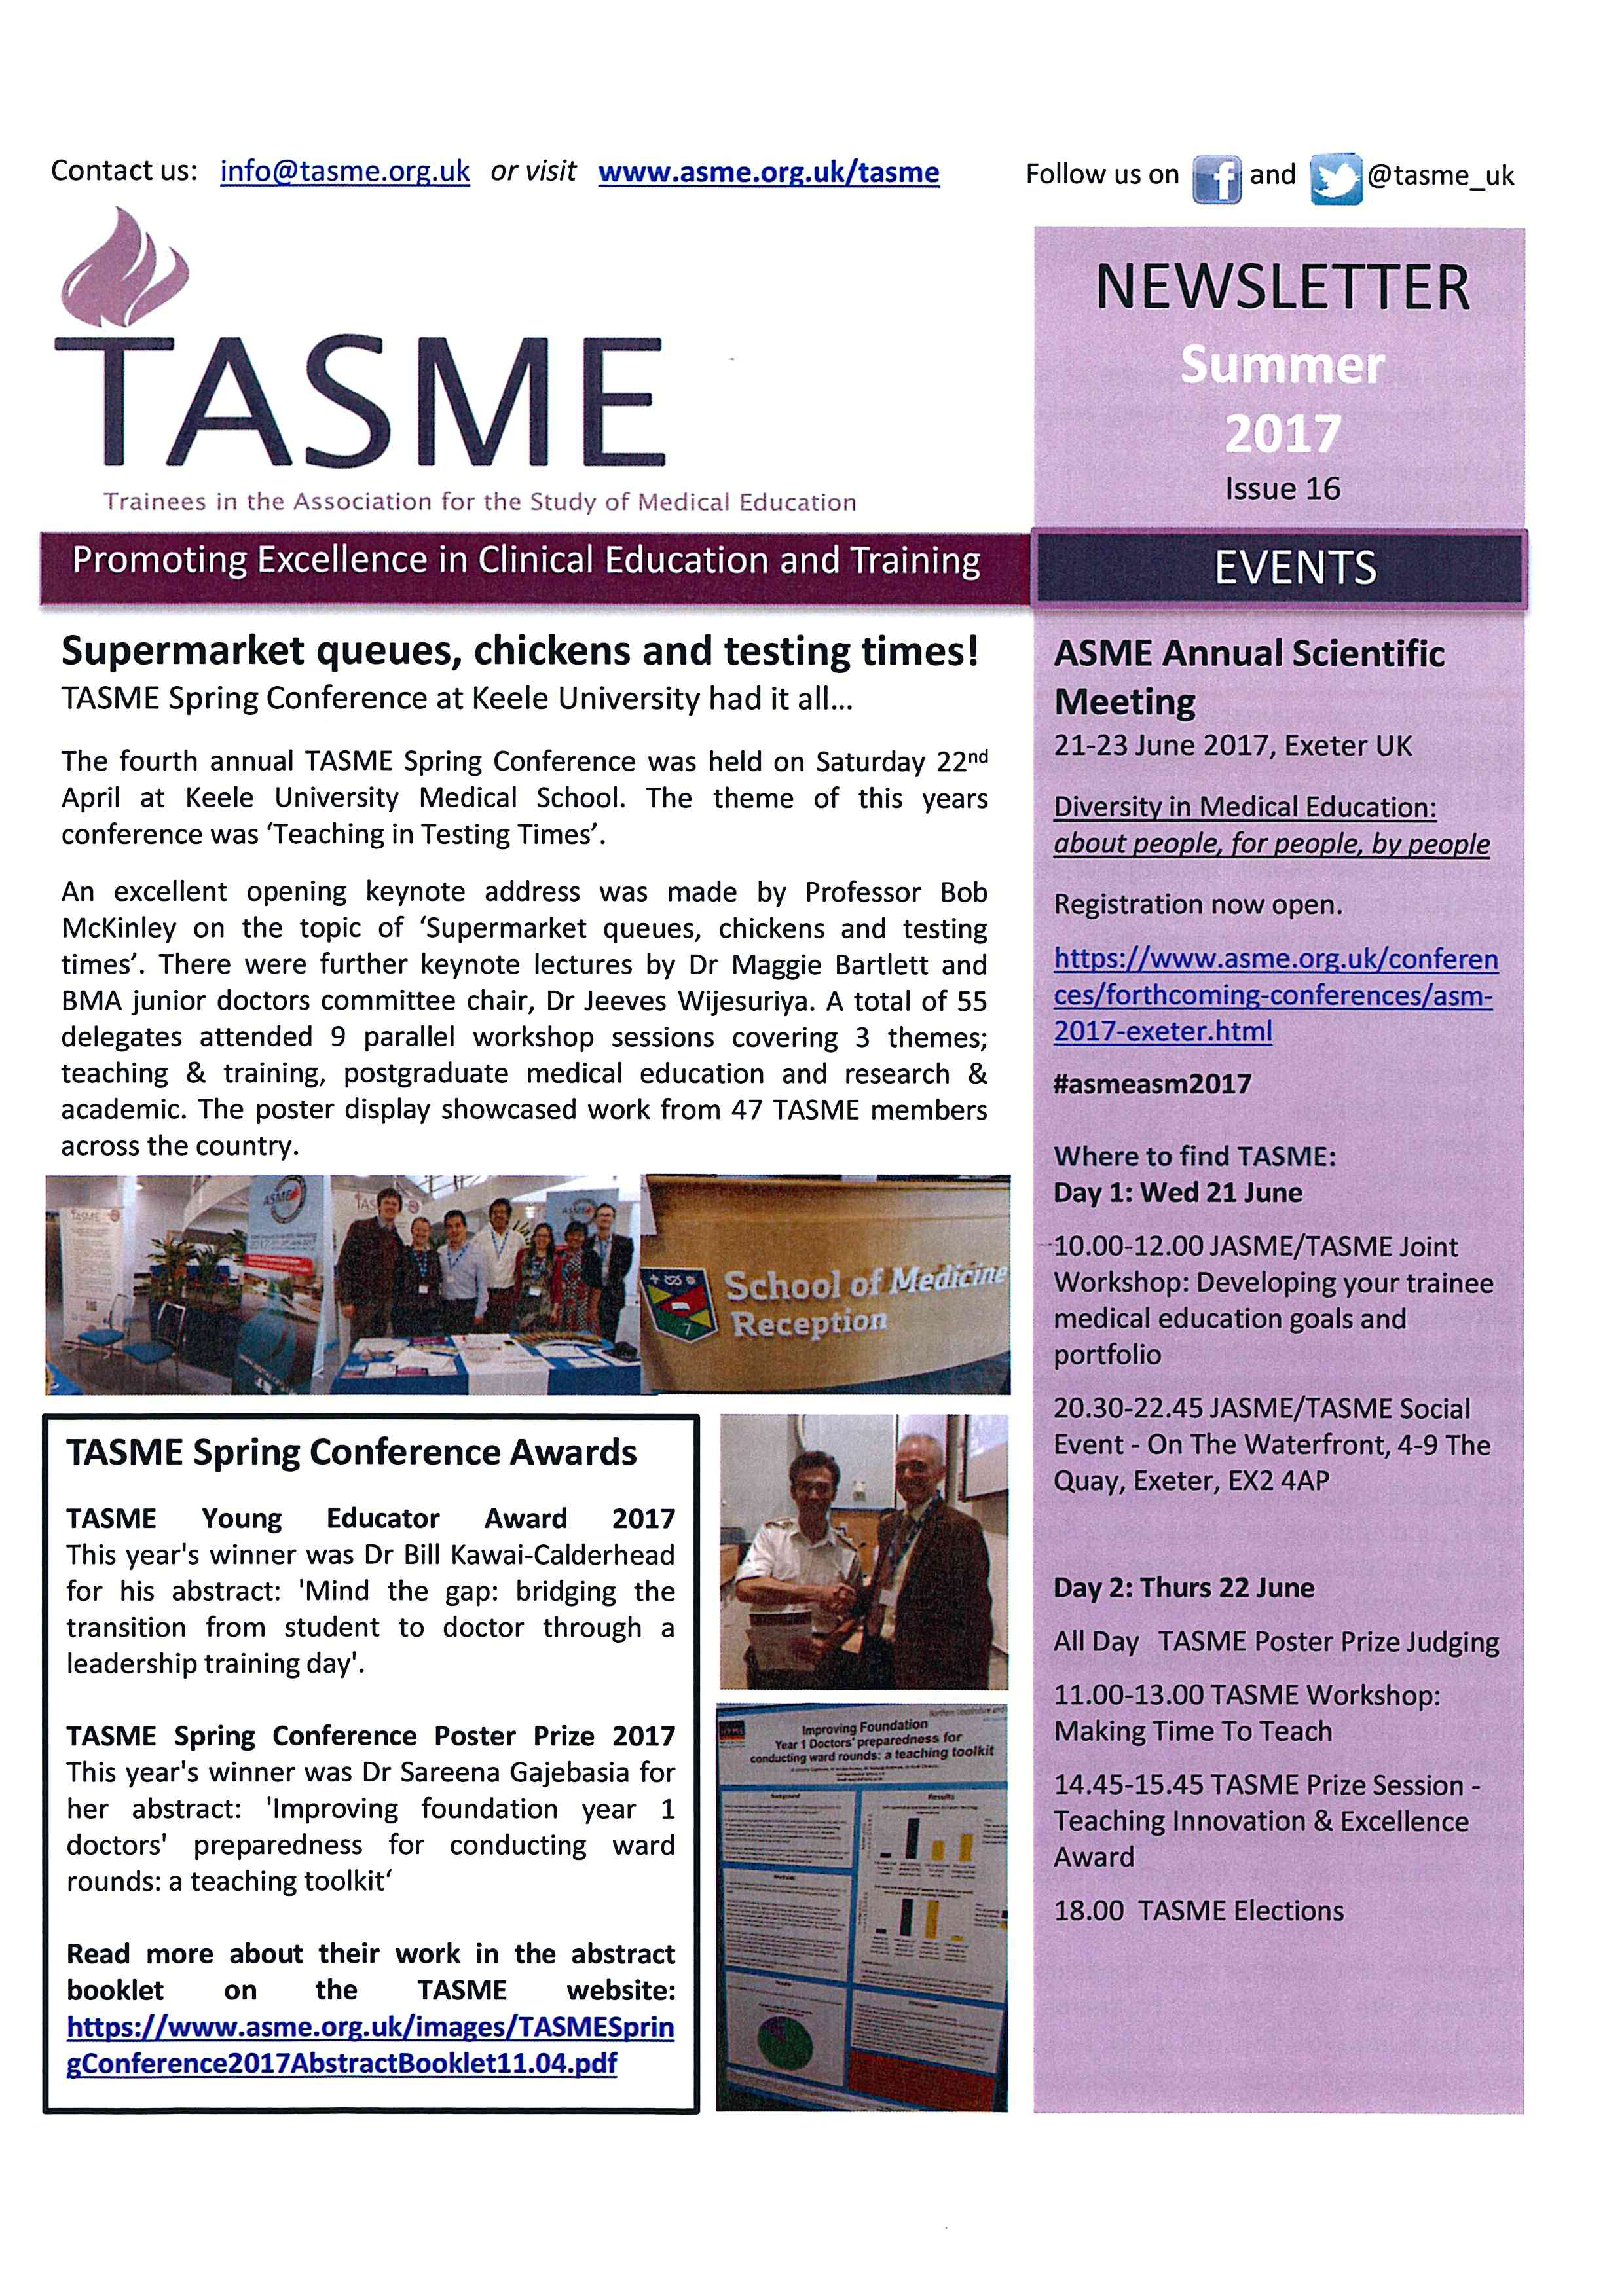 The latest TASME newsletter is here